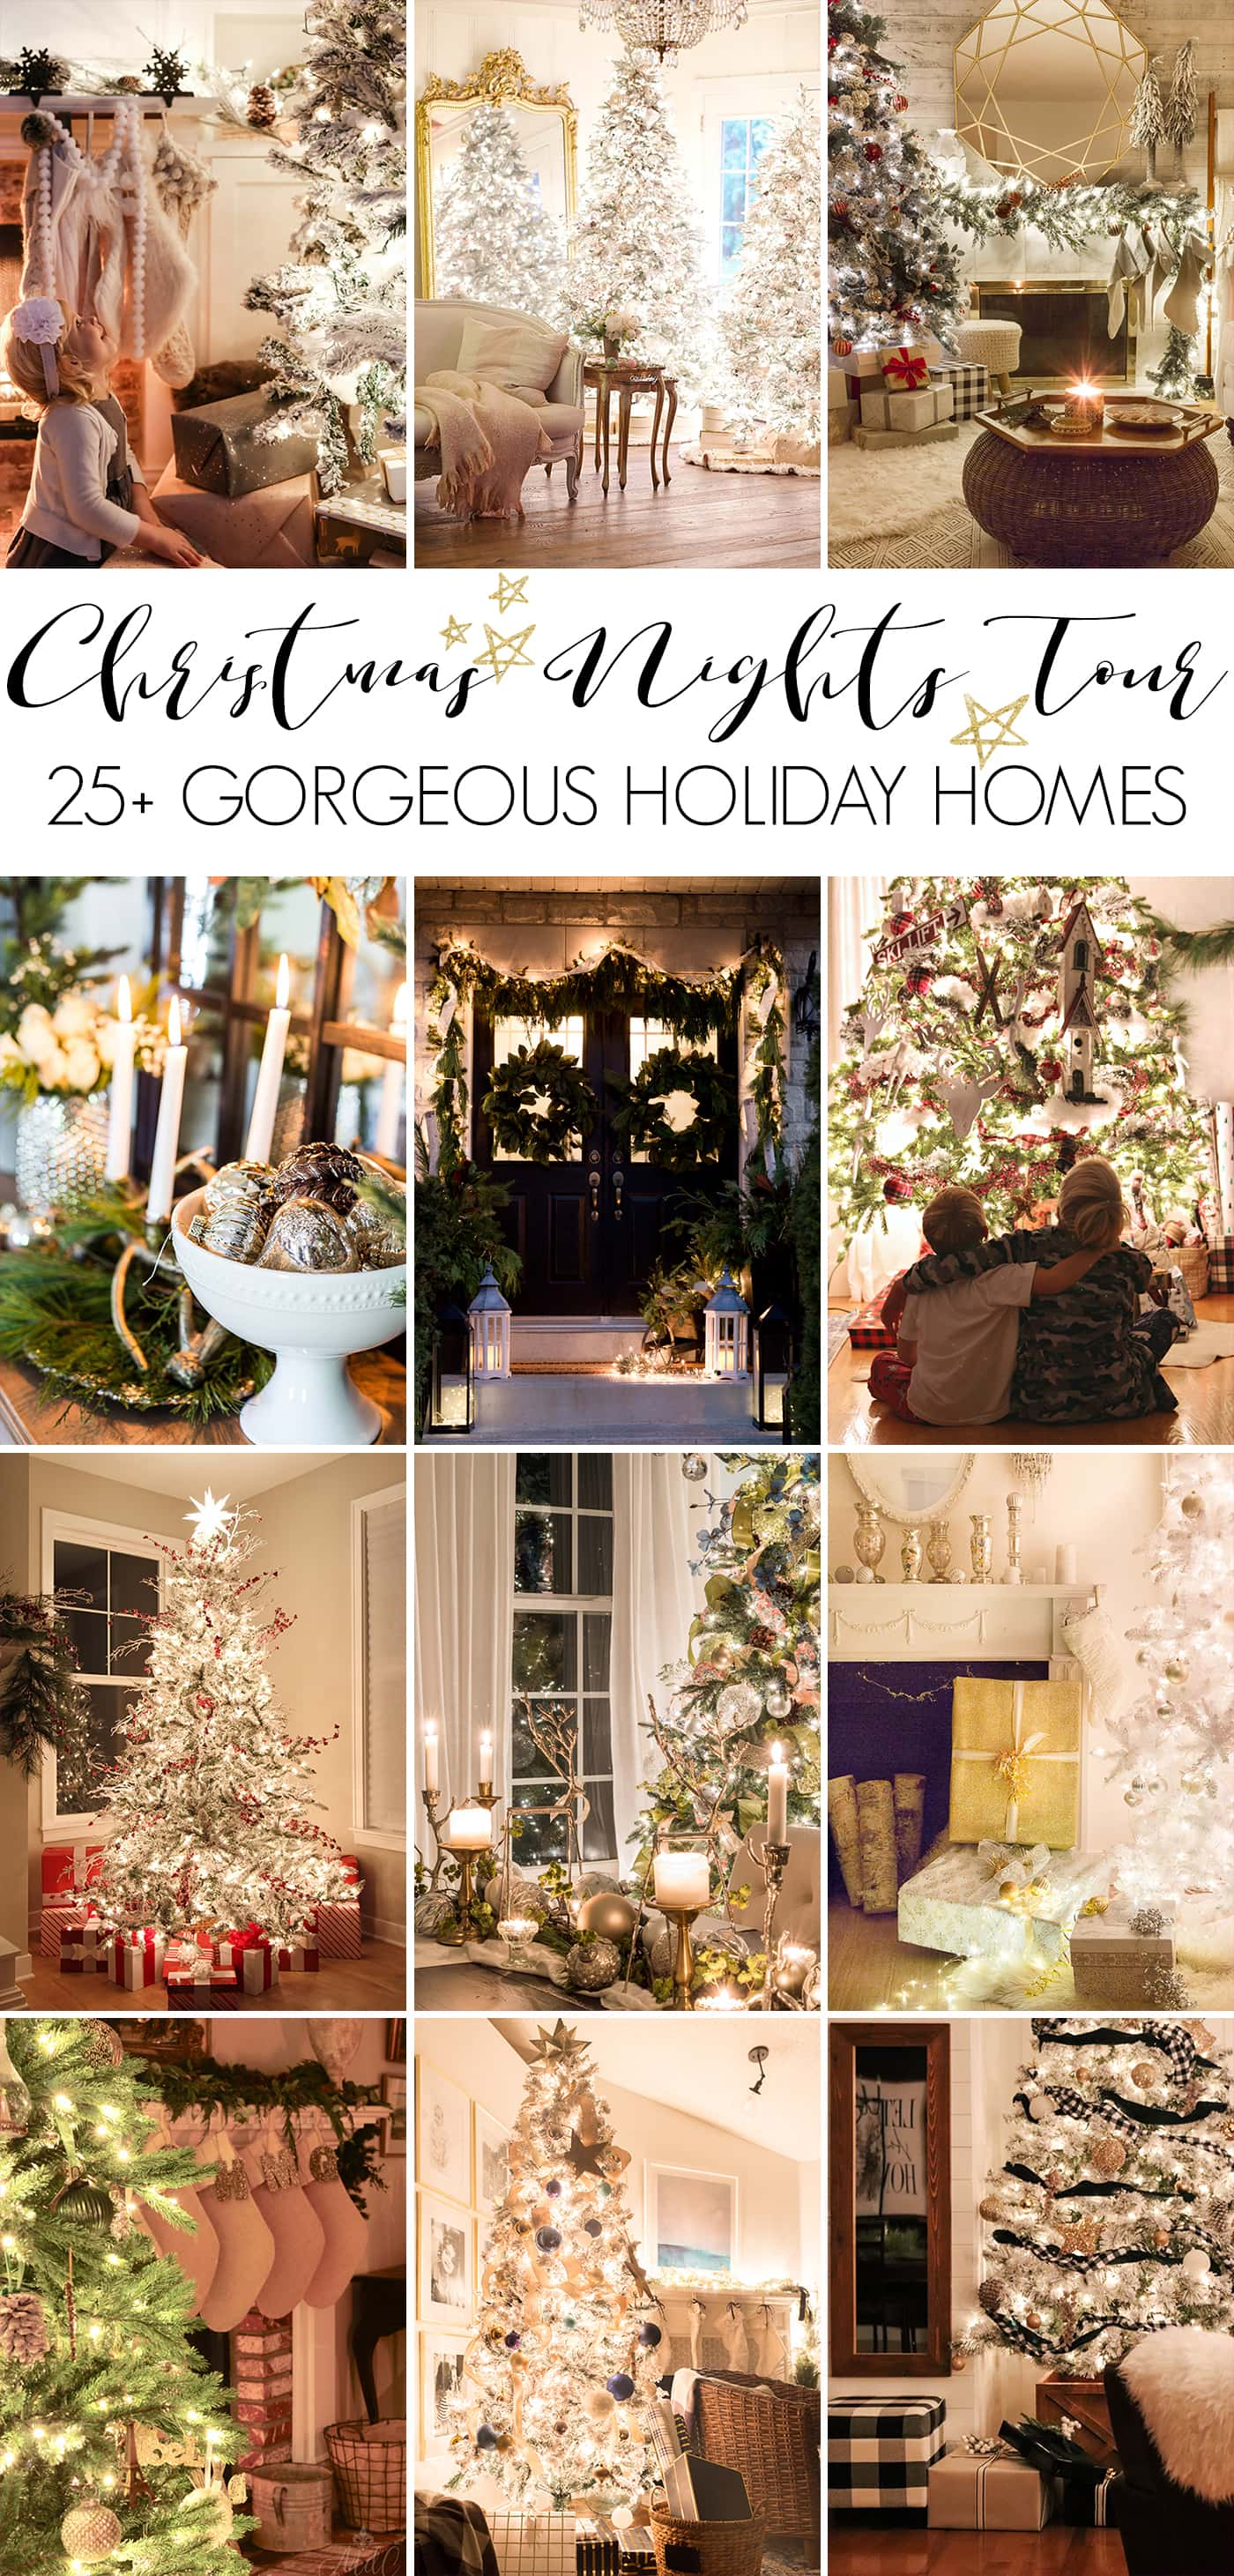 Christmas nights tour: gorgeous Christmas lights at night in these 25+ home tours kellyelko.com #christmasnightstour #holidayhometour #christmaslights